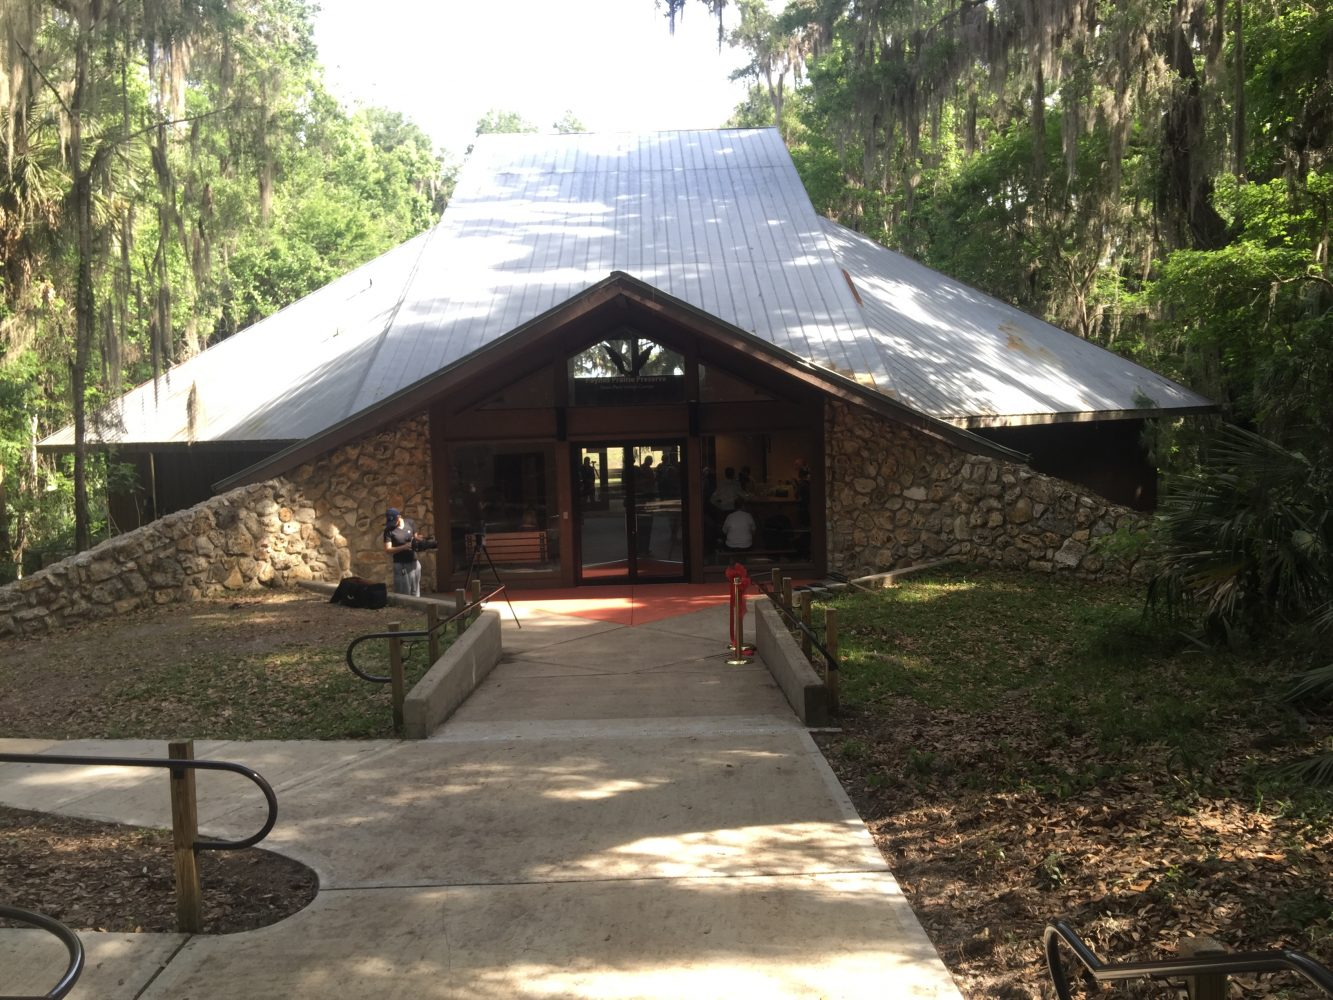 The Paynes Prairie visitor's center was closed in September 2015 for renovations. Chloe Equizi/WUFT News